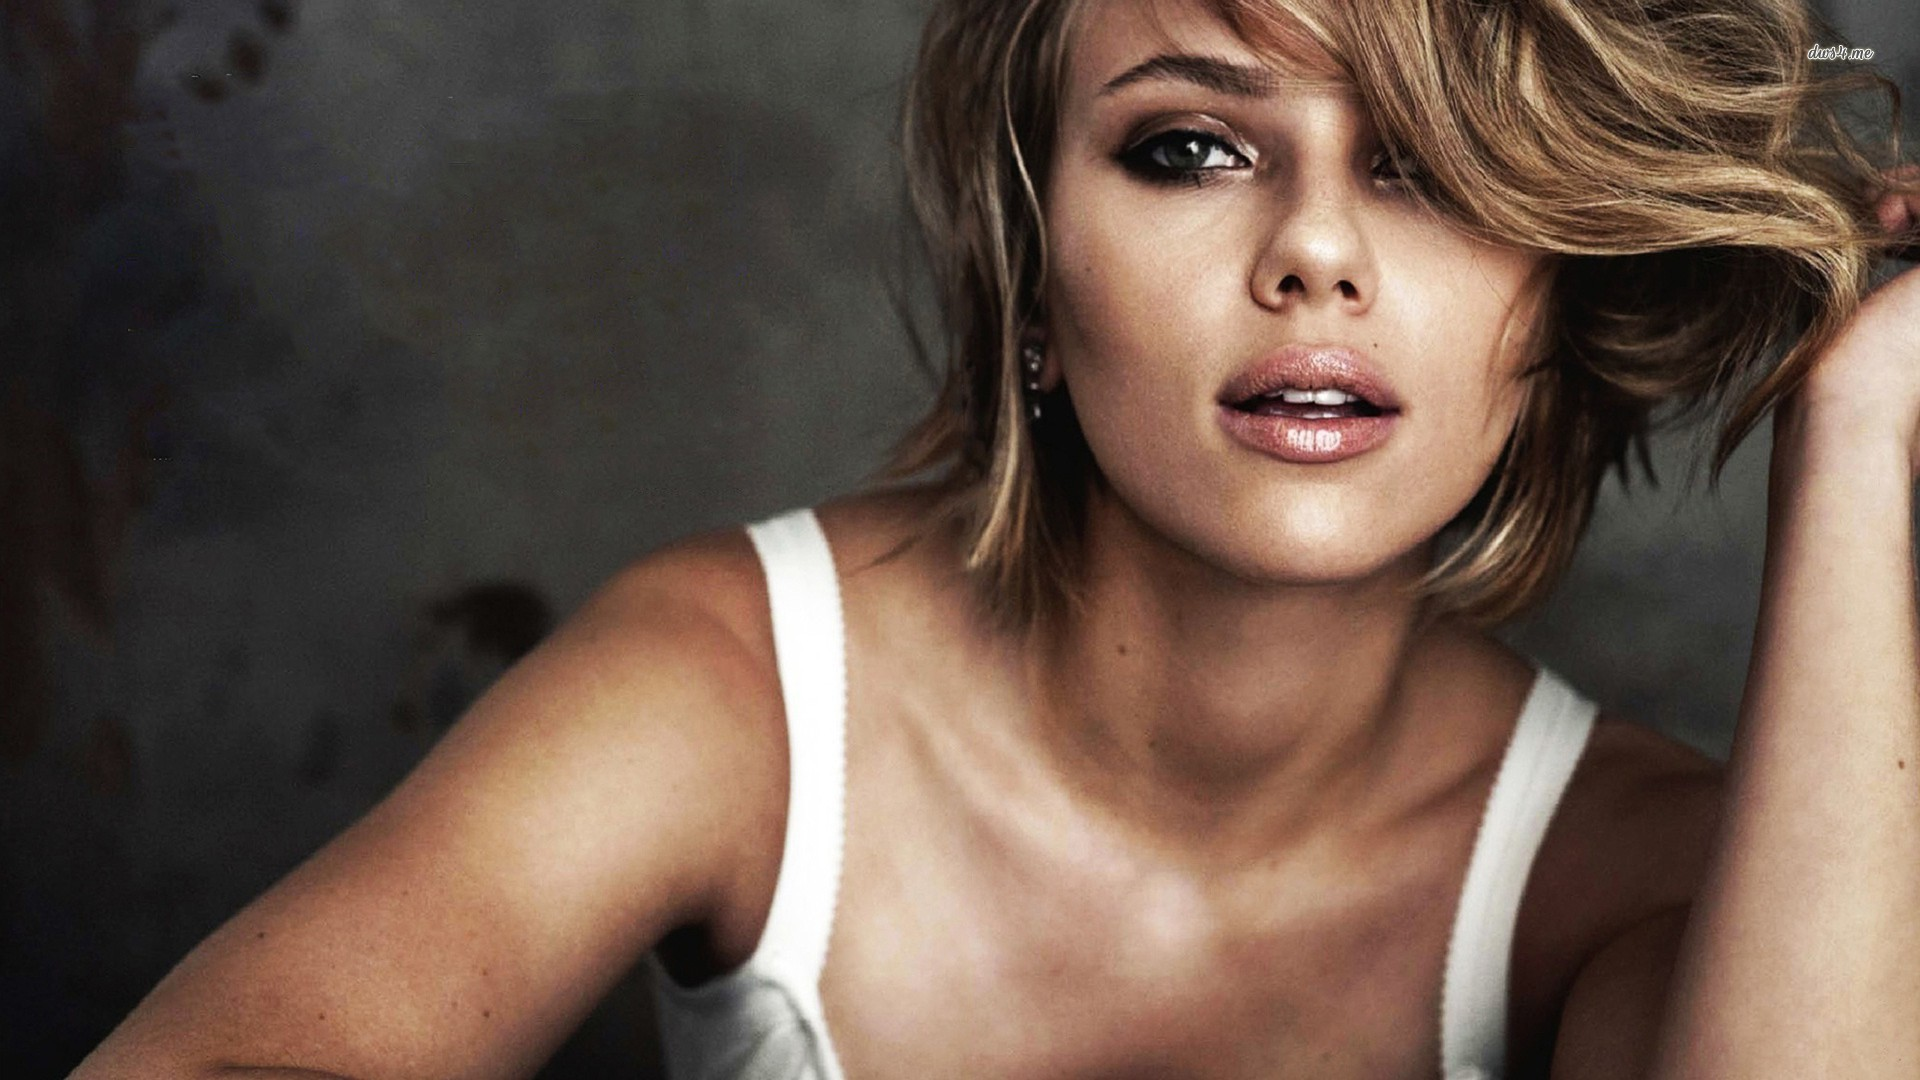 Scarlett Johansson Wallpaper: Scarlett Johansson Wallpaper HD (68+ Images